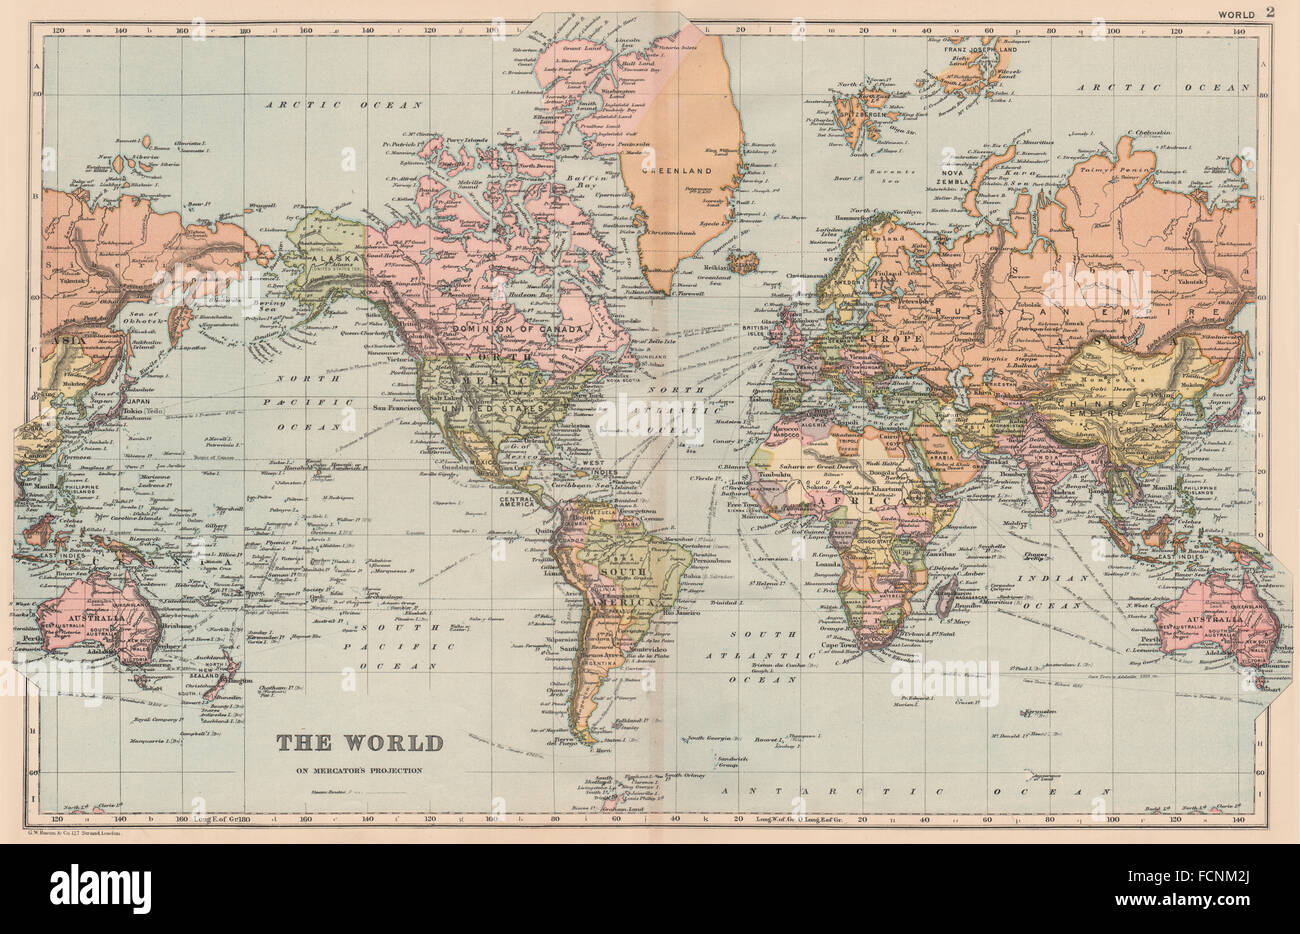 Antique Map Of World.World Mercator S Projection Shipping Routes Bacon 1893 Antique